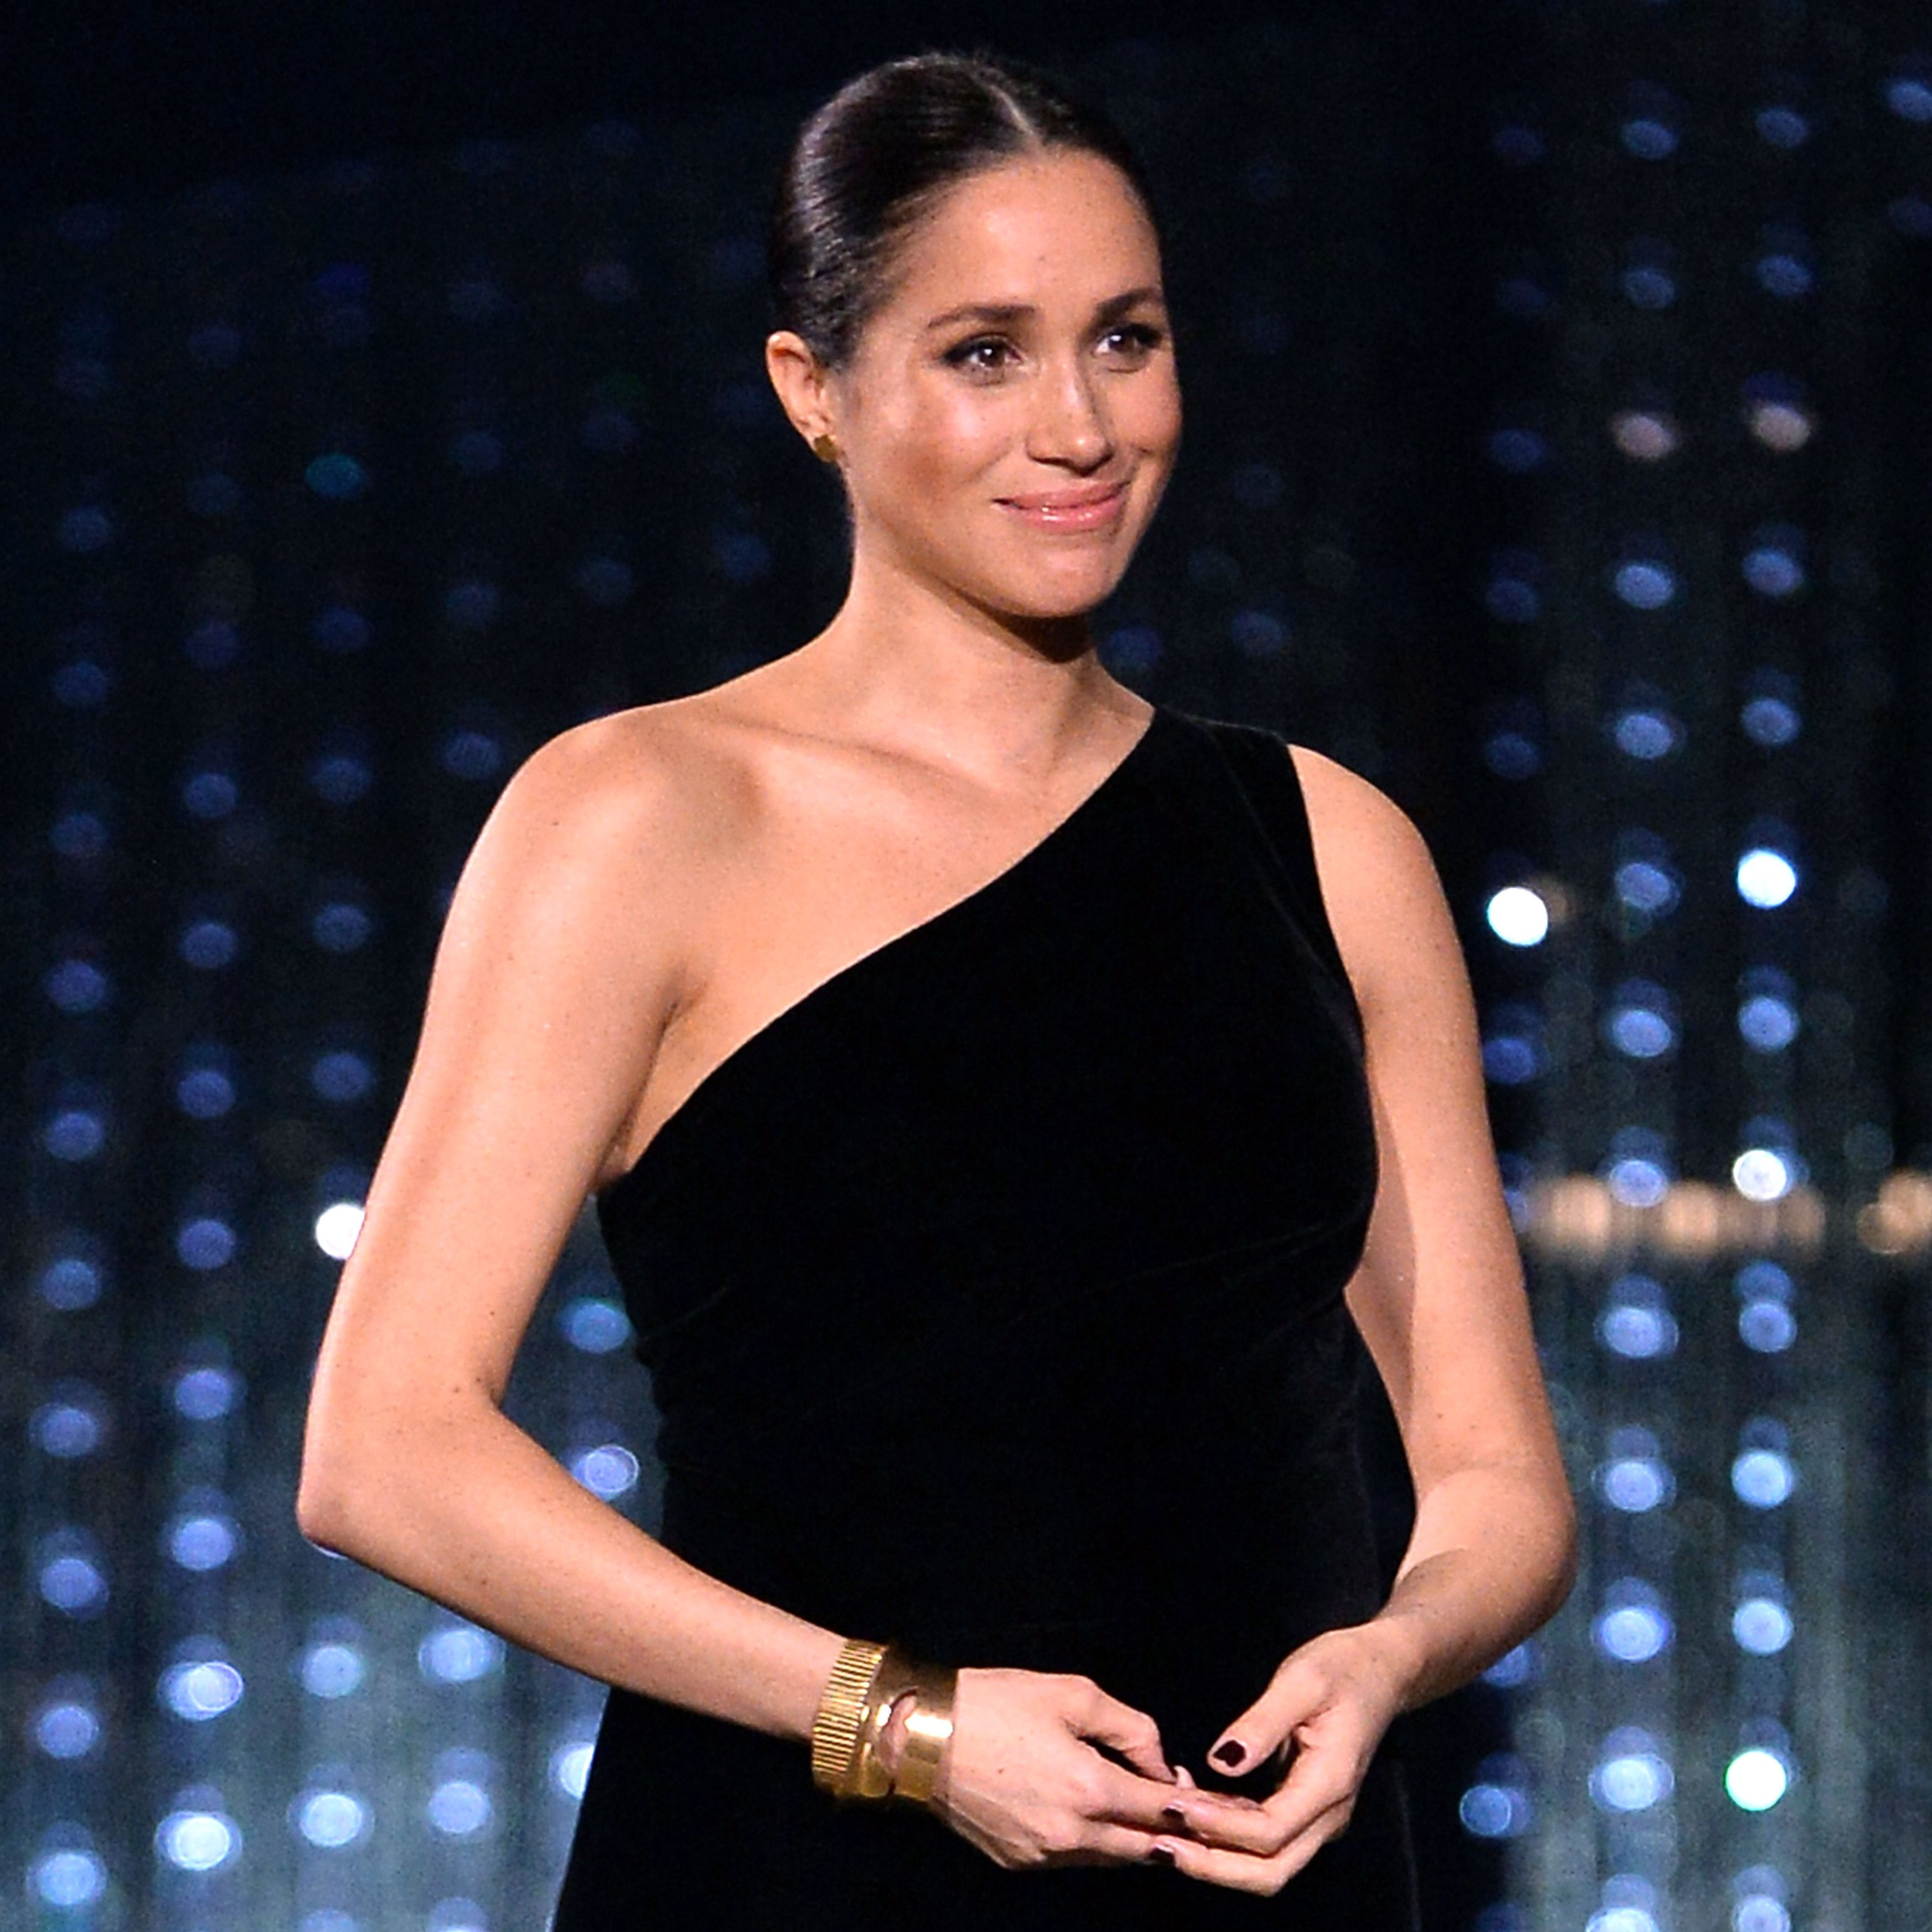 duchess meghan-markle-fashion-awards-black-dress